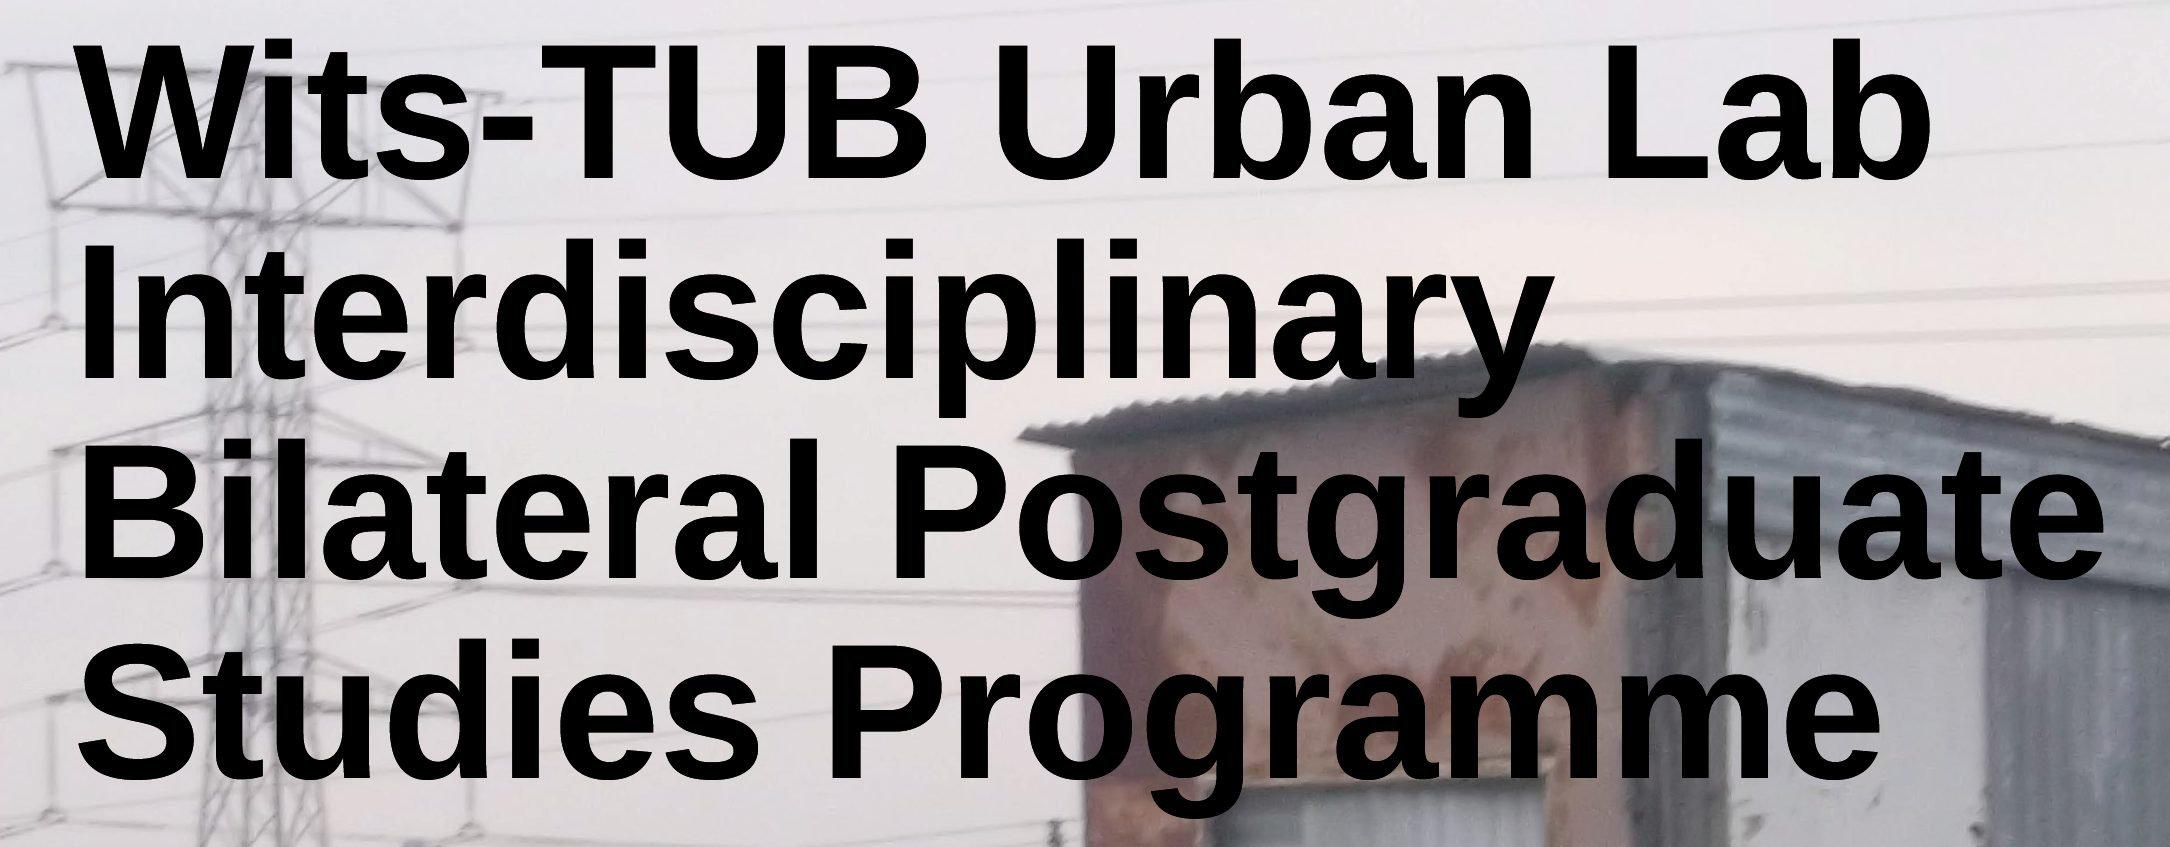 Wits-TUB Urban Lab Interdisciplinary Bilateral Postgraduate Studies